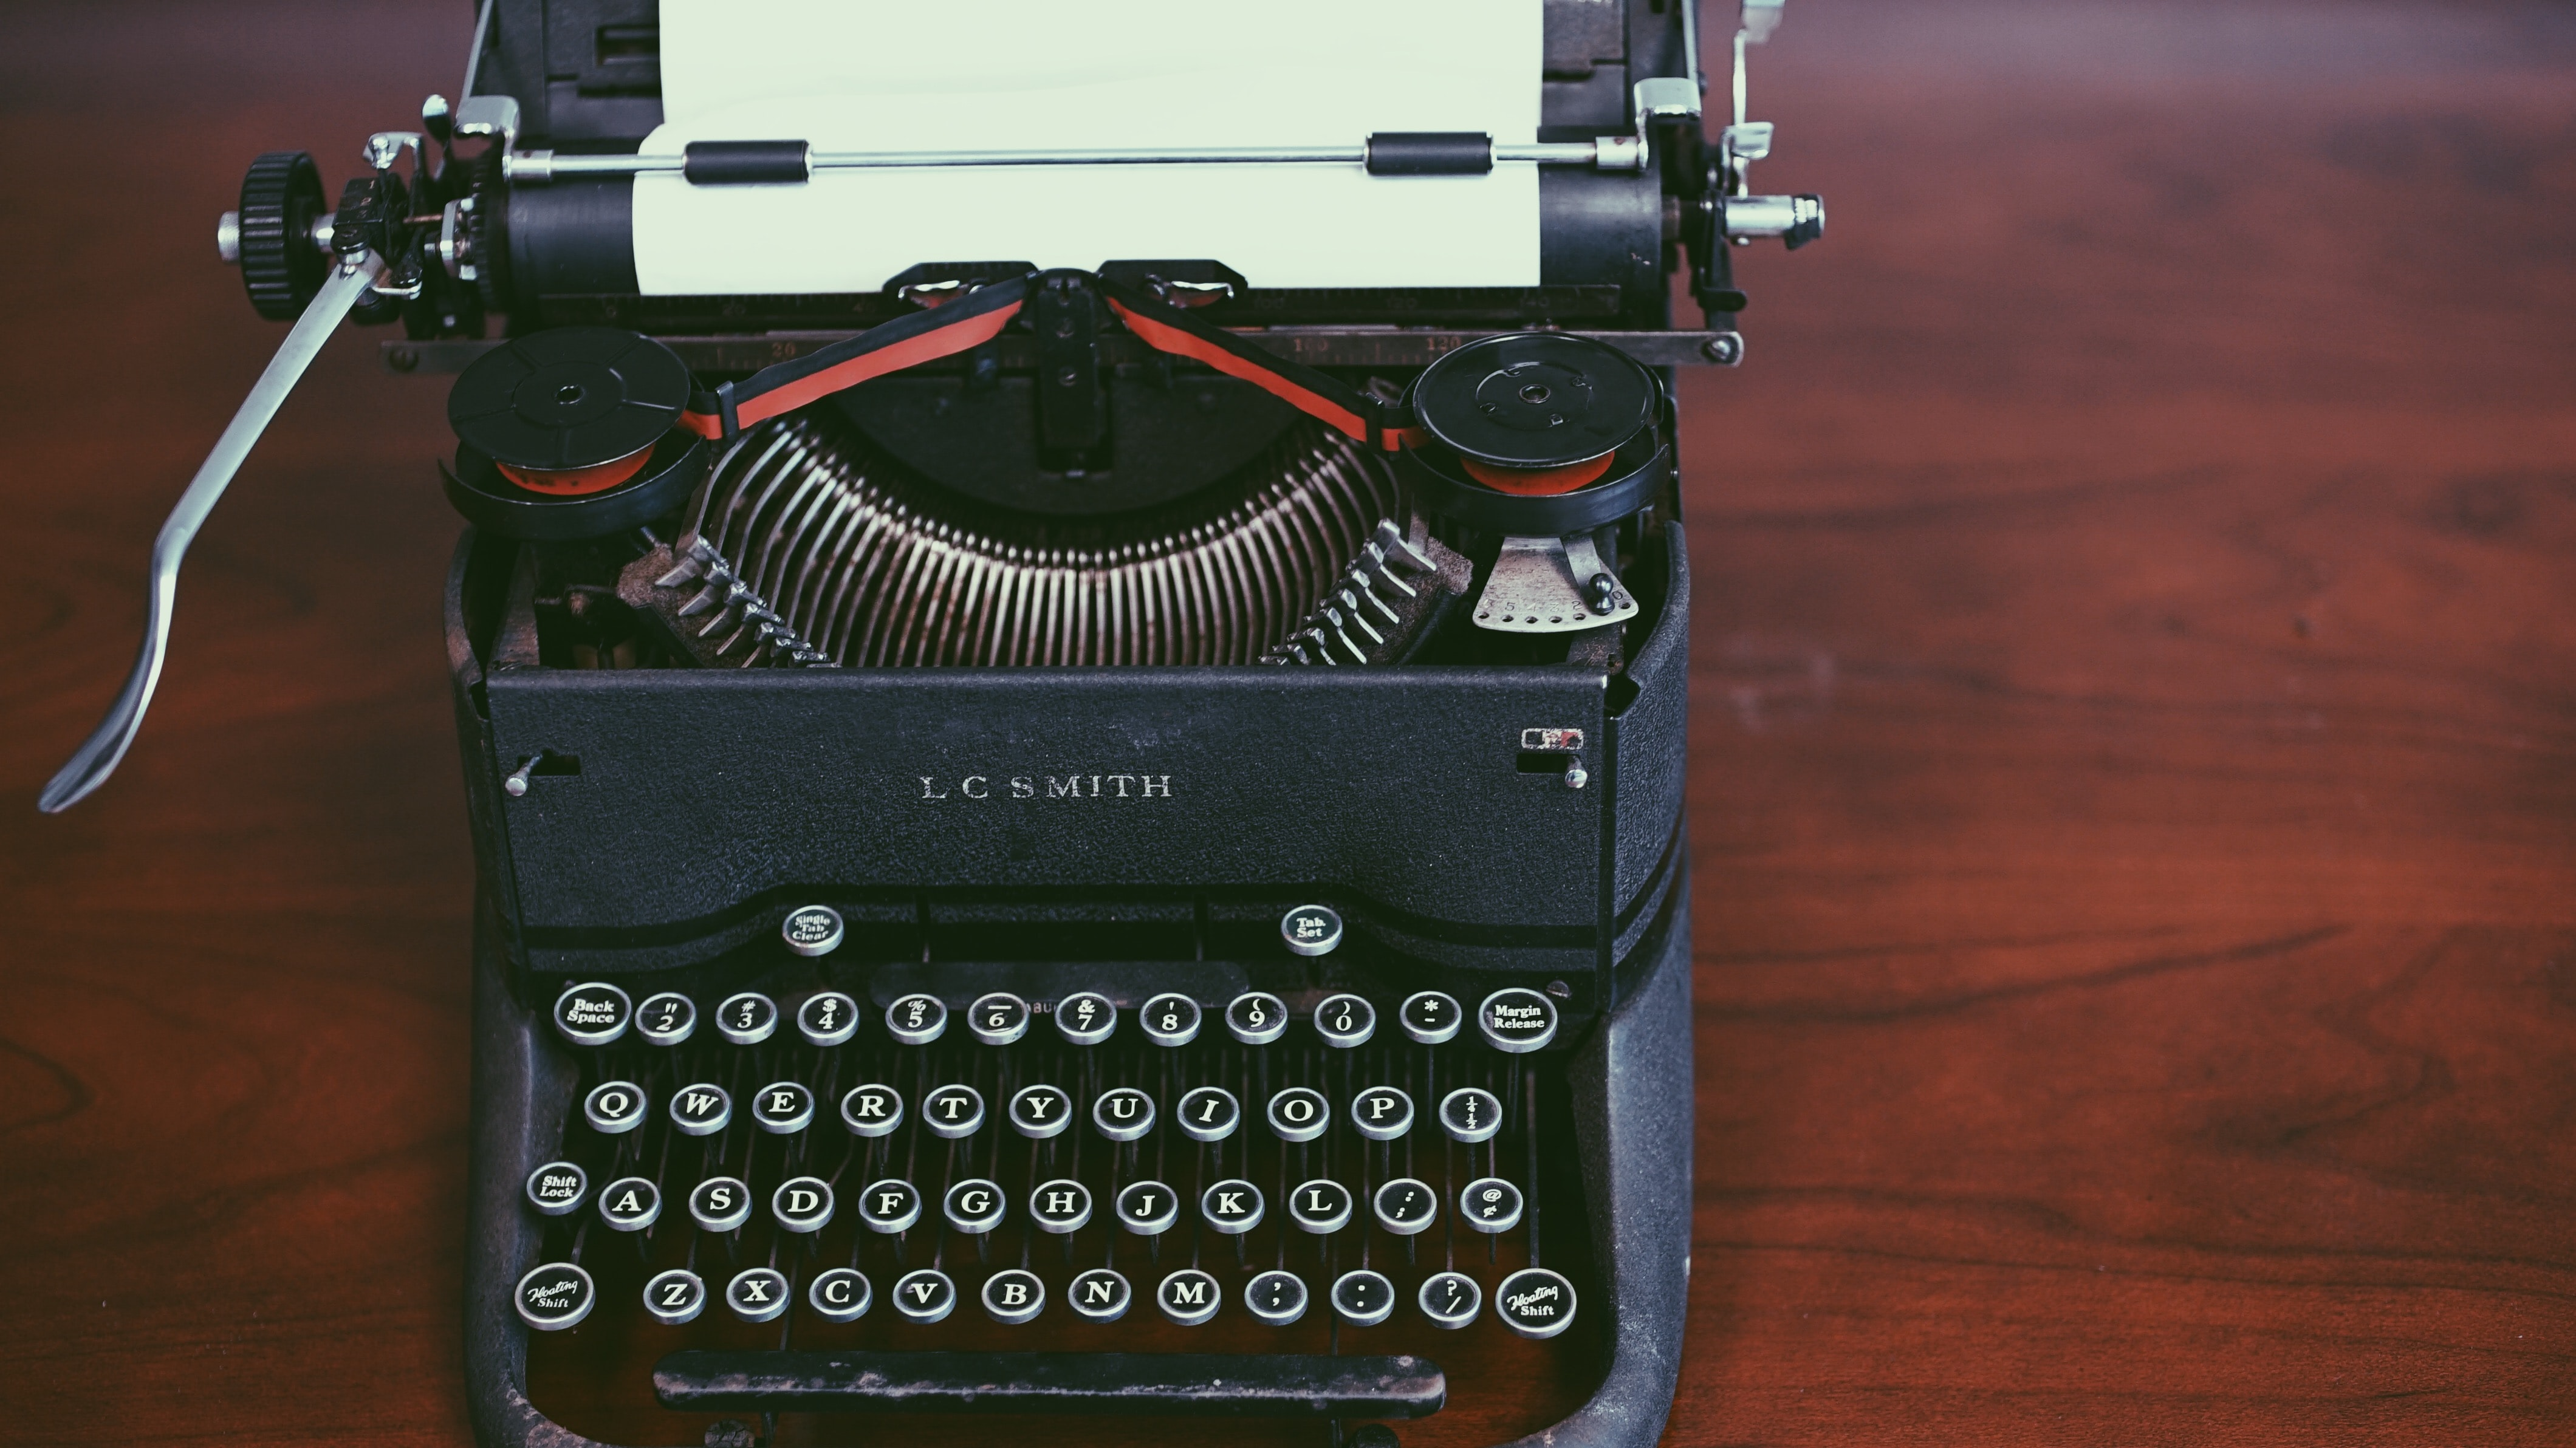 An old black LC Smith typewriter on a wooden surface